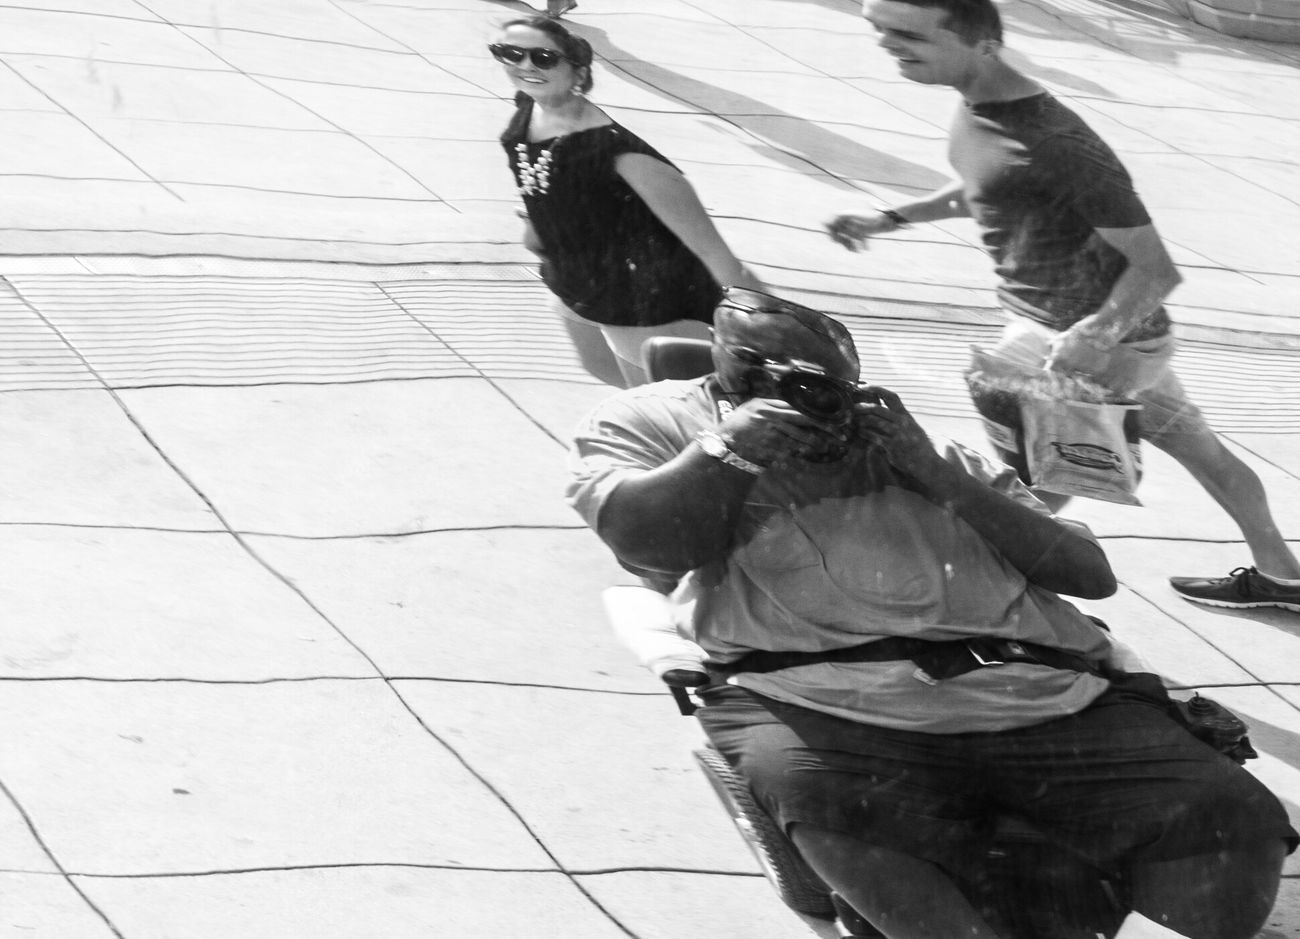 Self portrait Real People Leisure Activity Outdoors Men The Bean In Chicagp Reflection Scenics B&w Street Photography Black & White